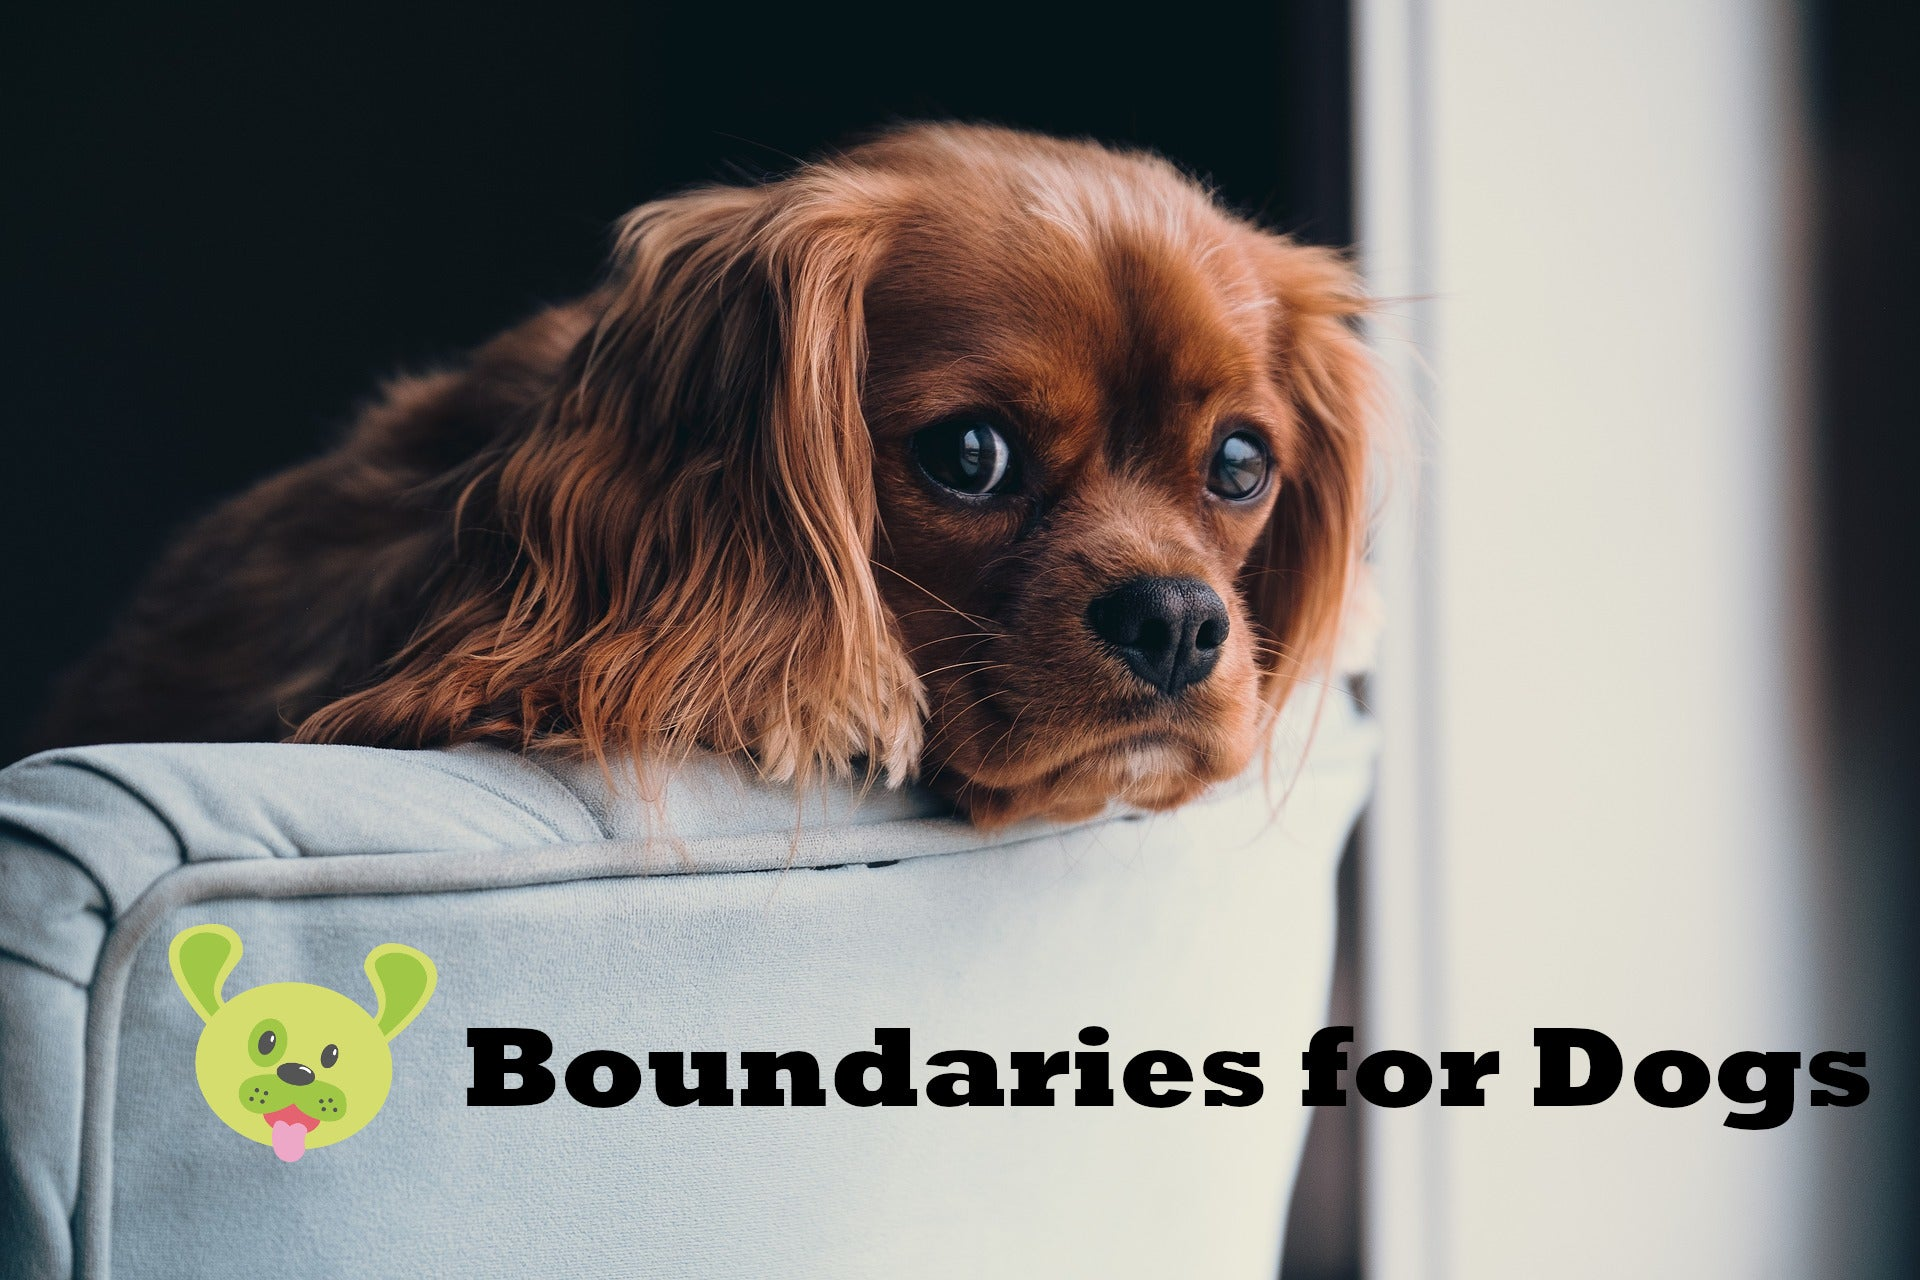 Boundaries for Dogs